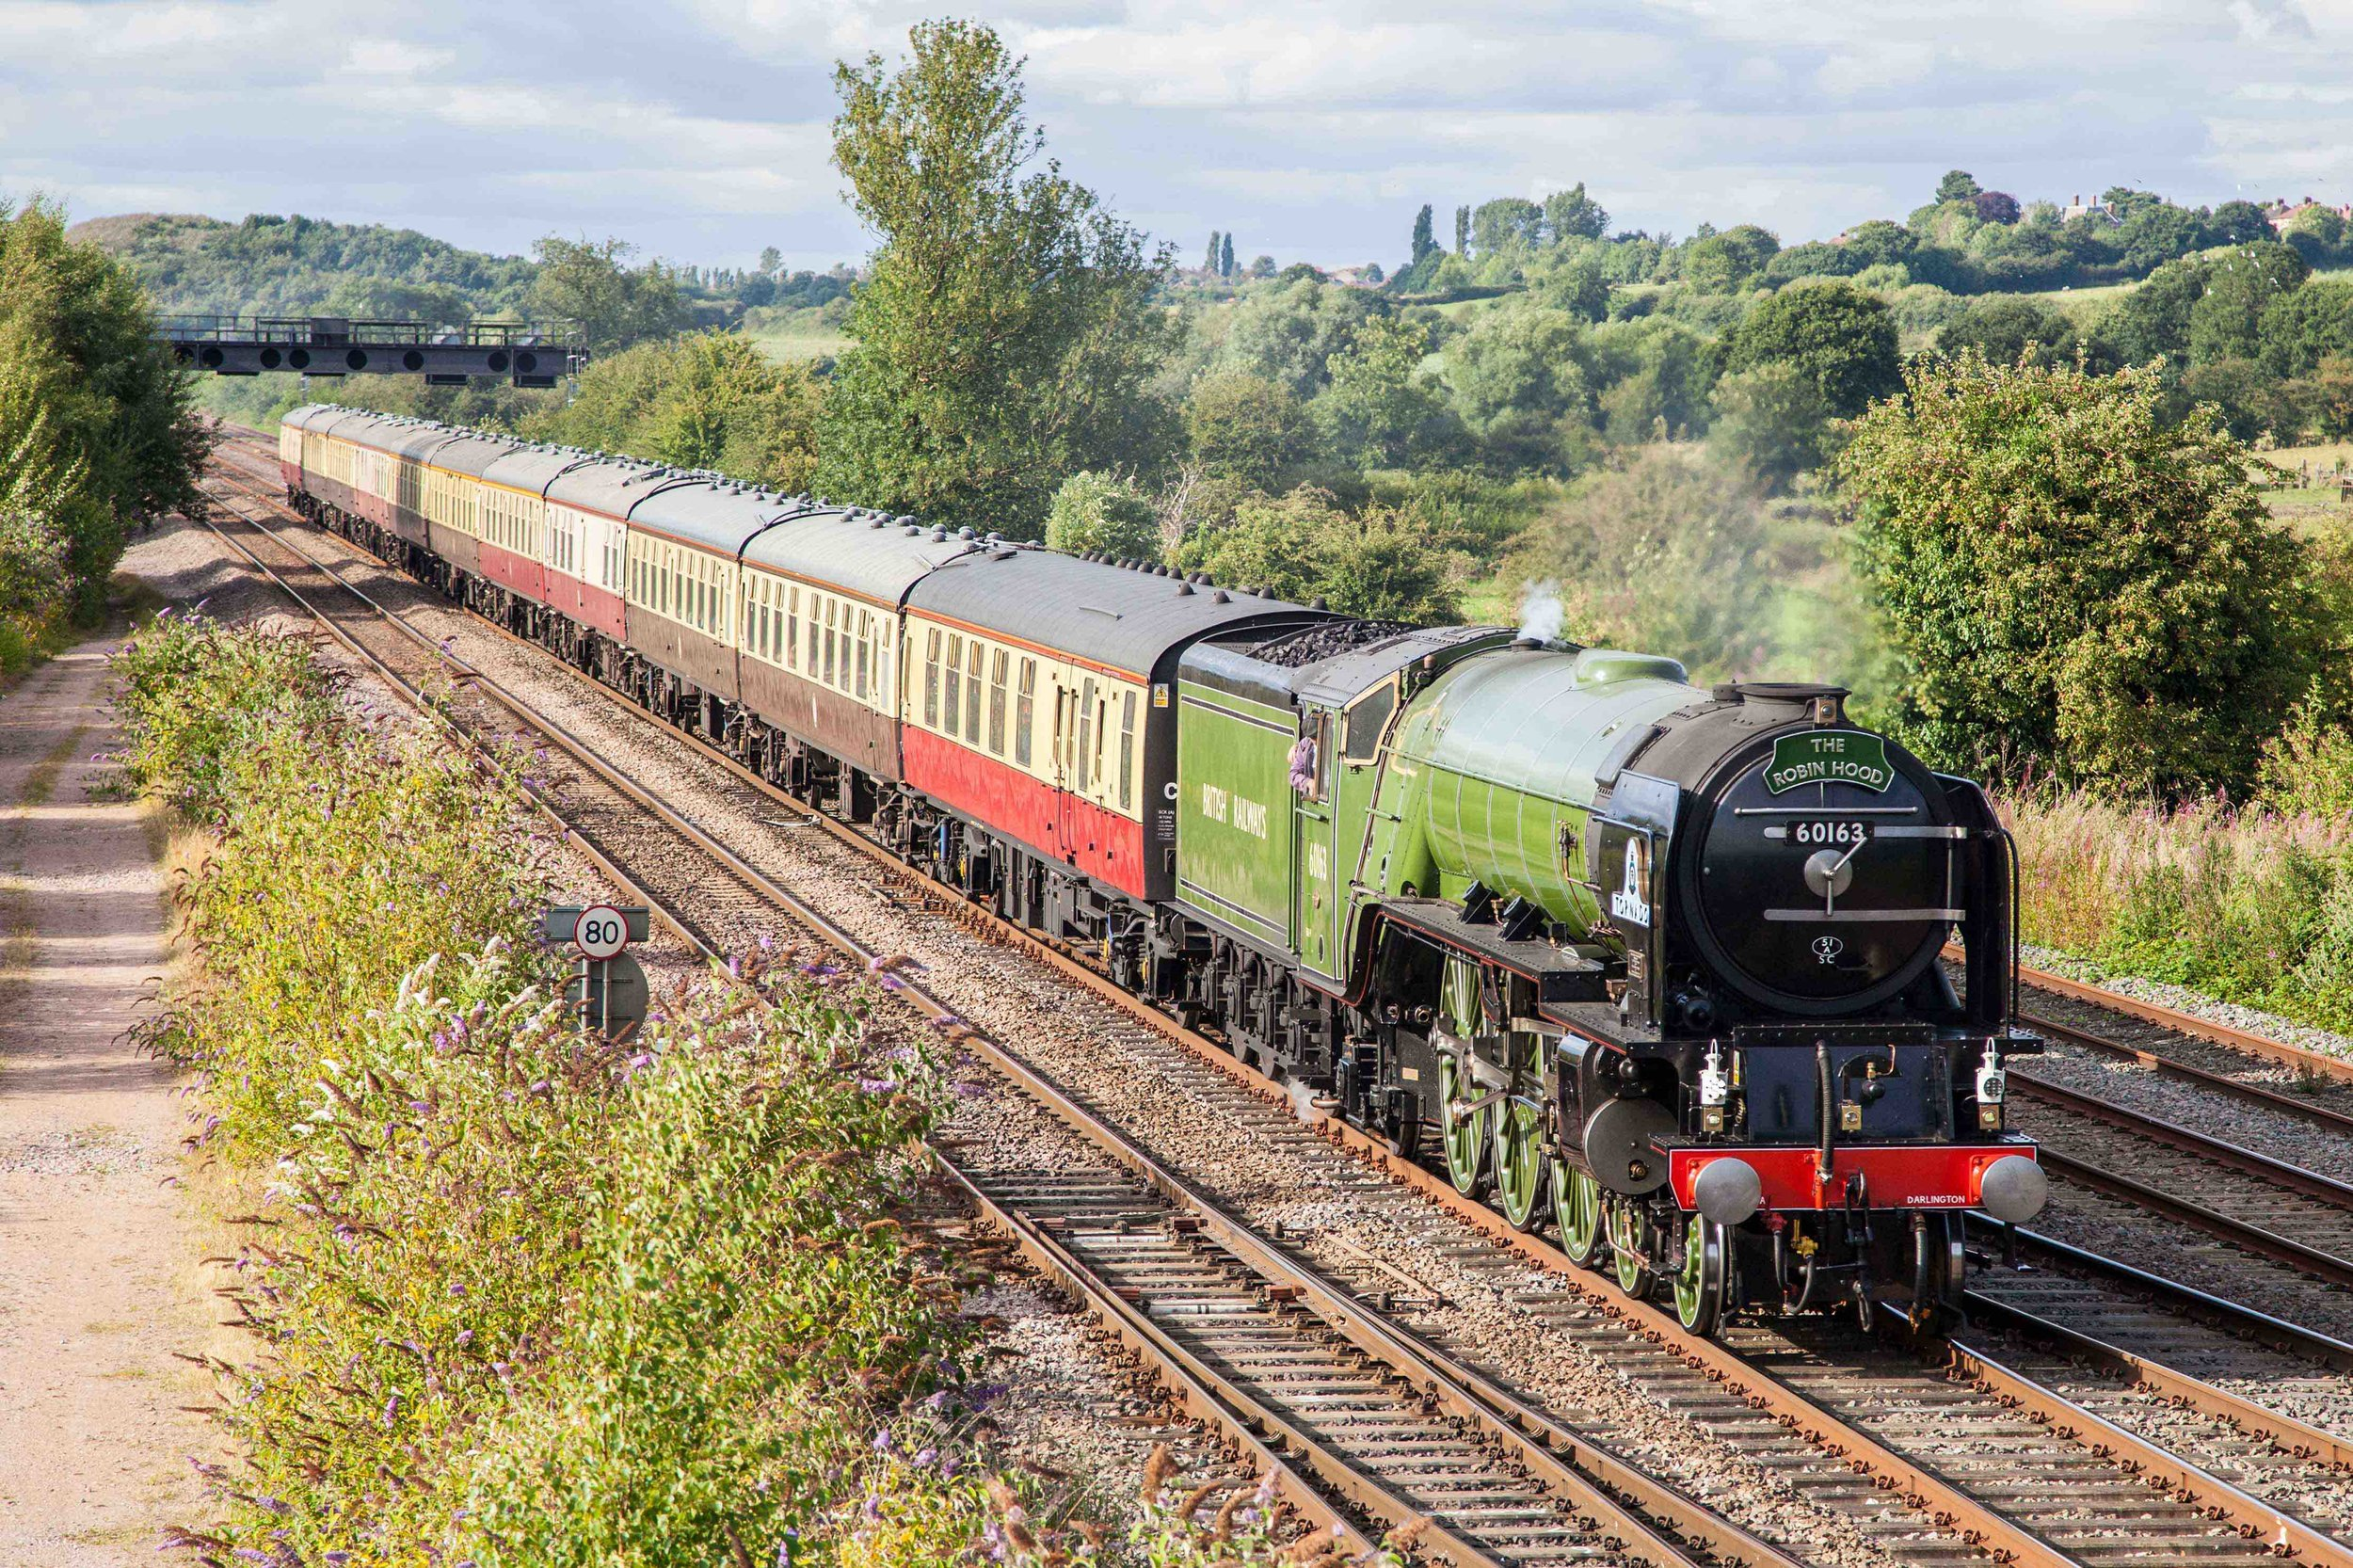 'A1' No. 60163  Tornado will be the locomotive taking charge of next month's S&C 'Plandampf'. STEVE DONALD